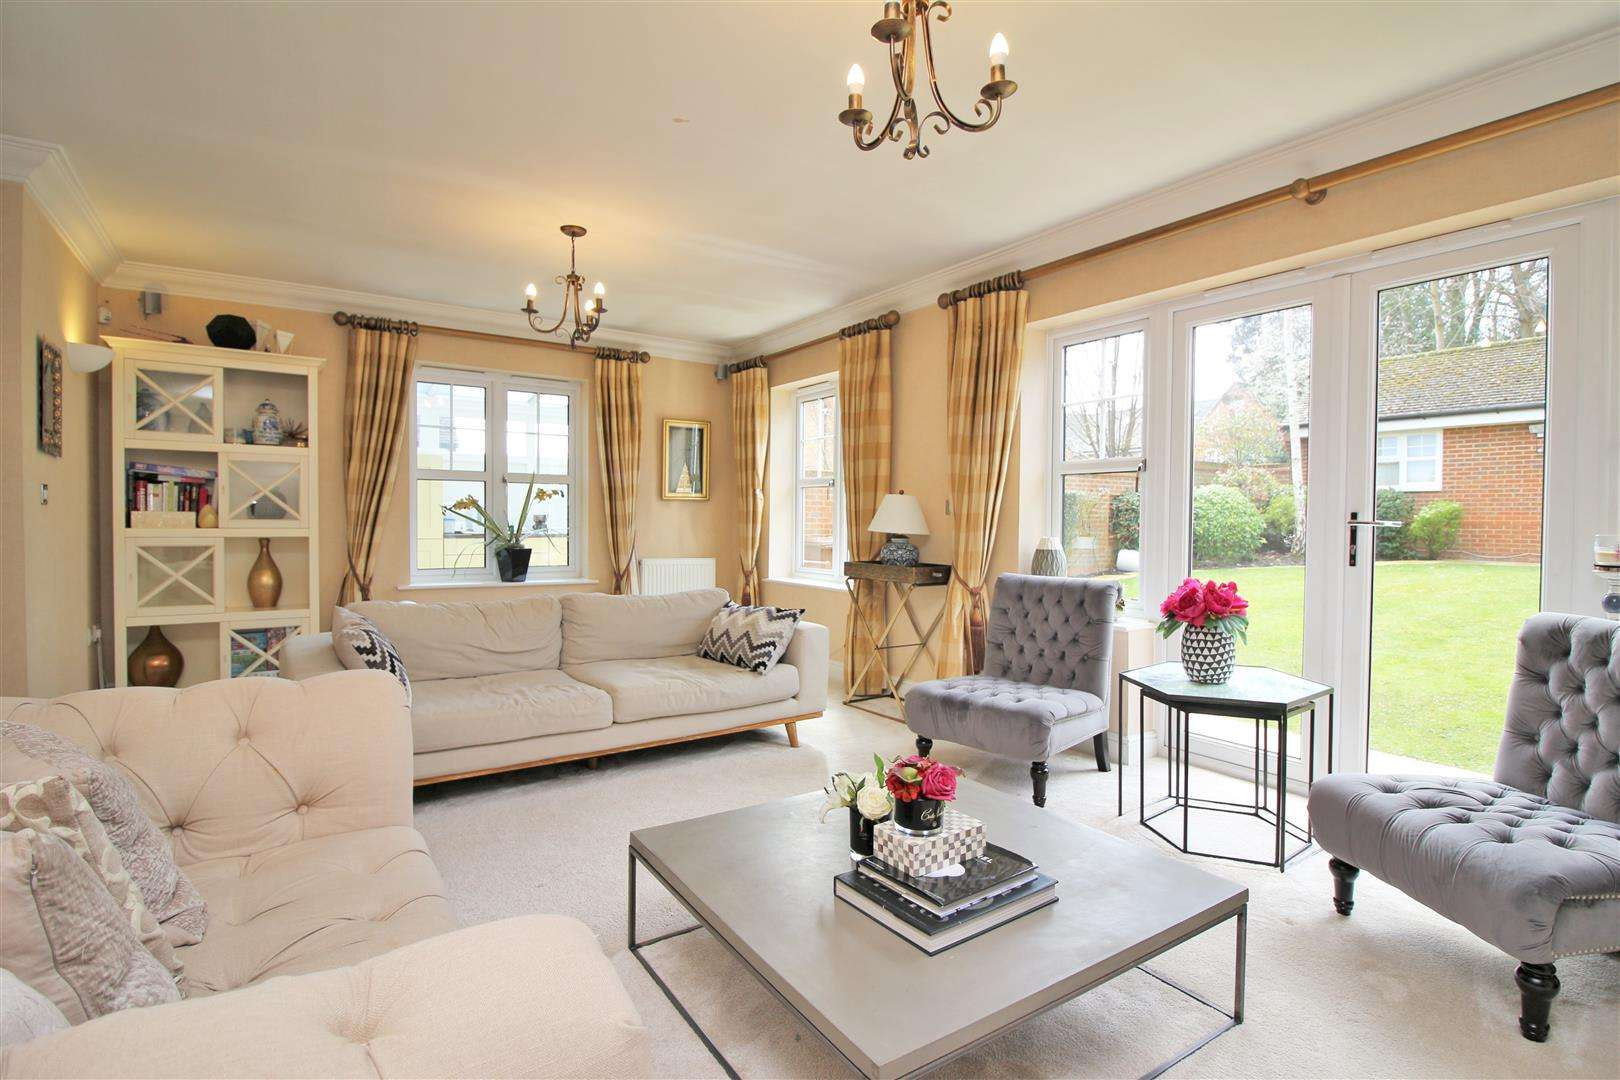 4 bed to rent in Bushey Heath - (Property Image 2)